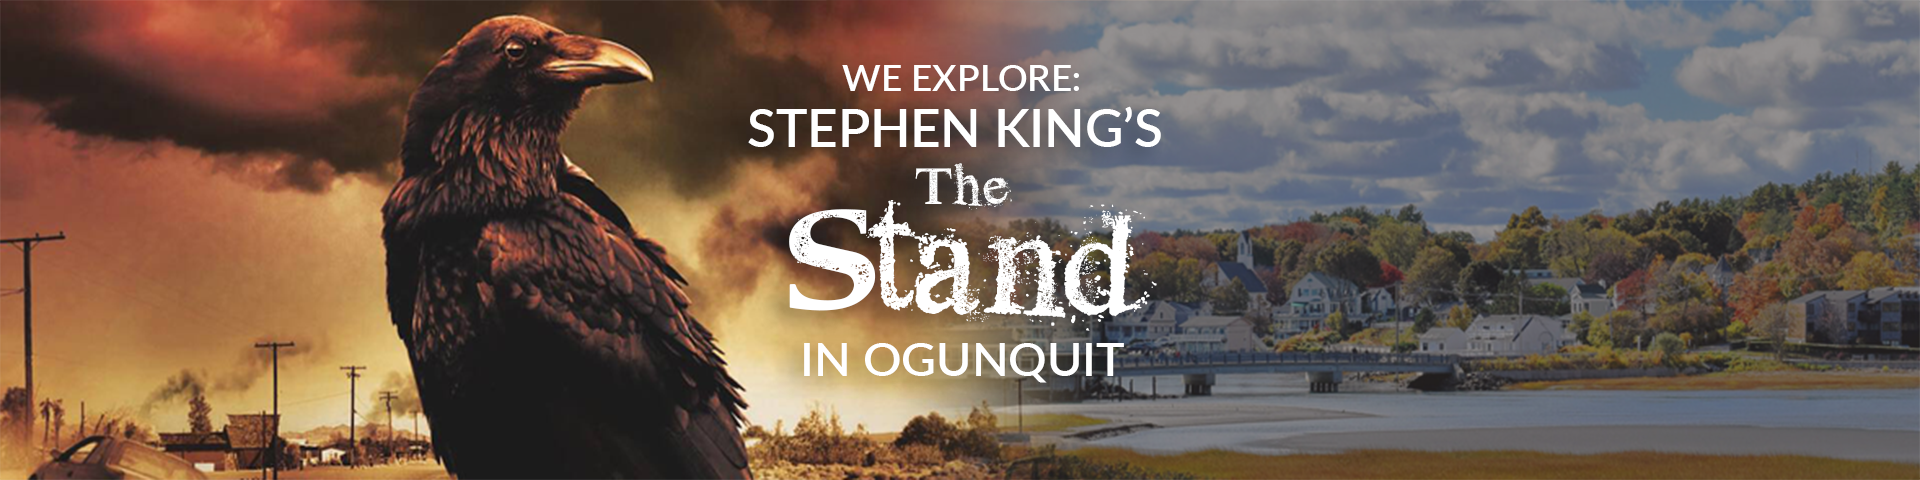 "Explore Ogunquit and Delve into the World of Stephen King's ""The Stand"""